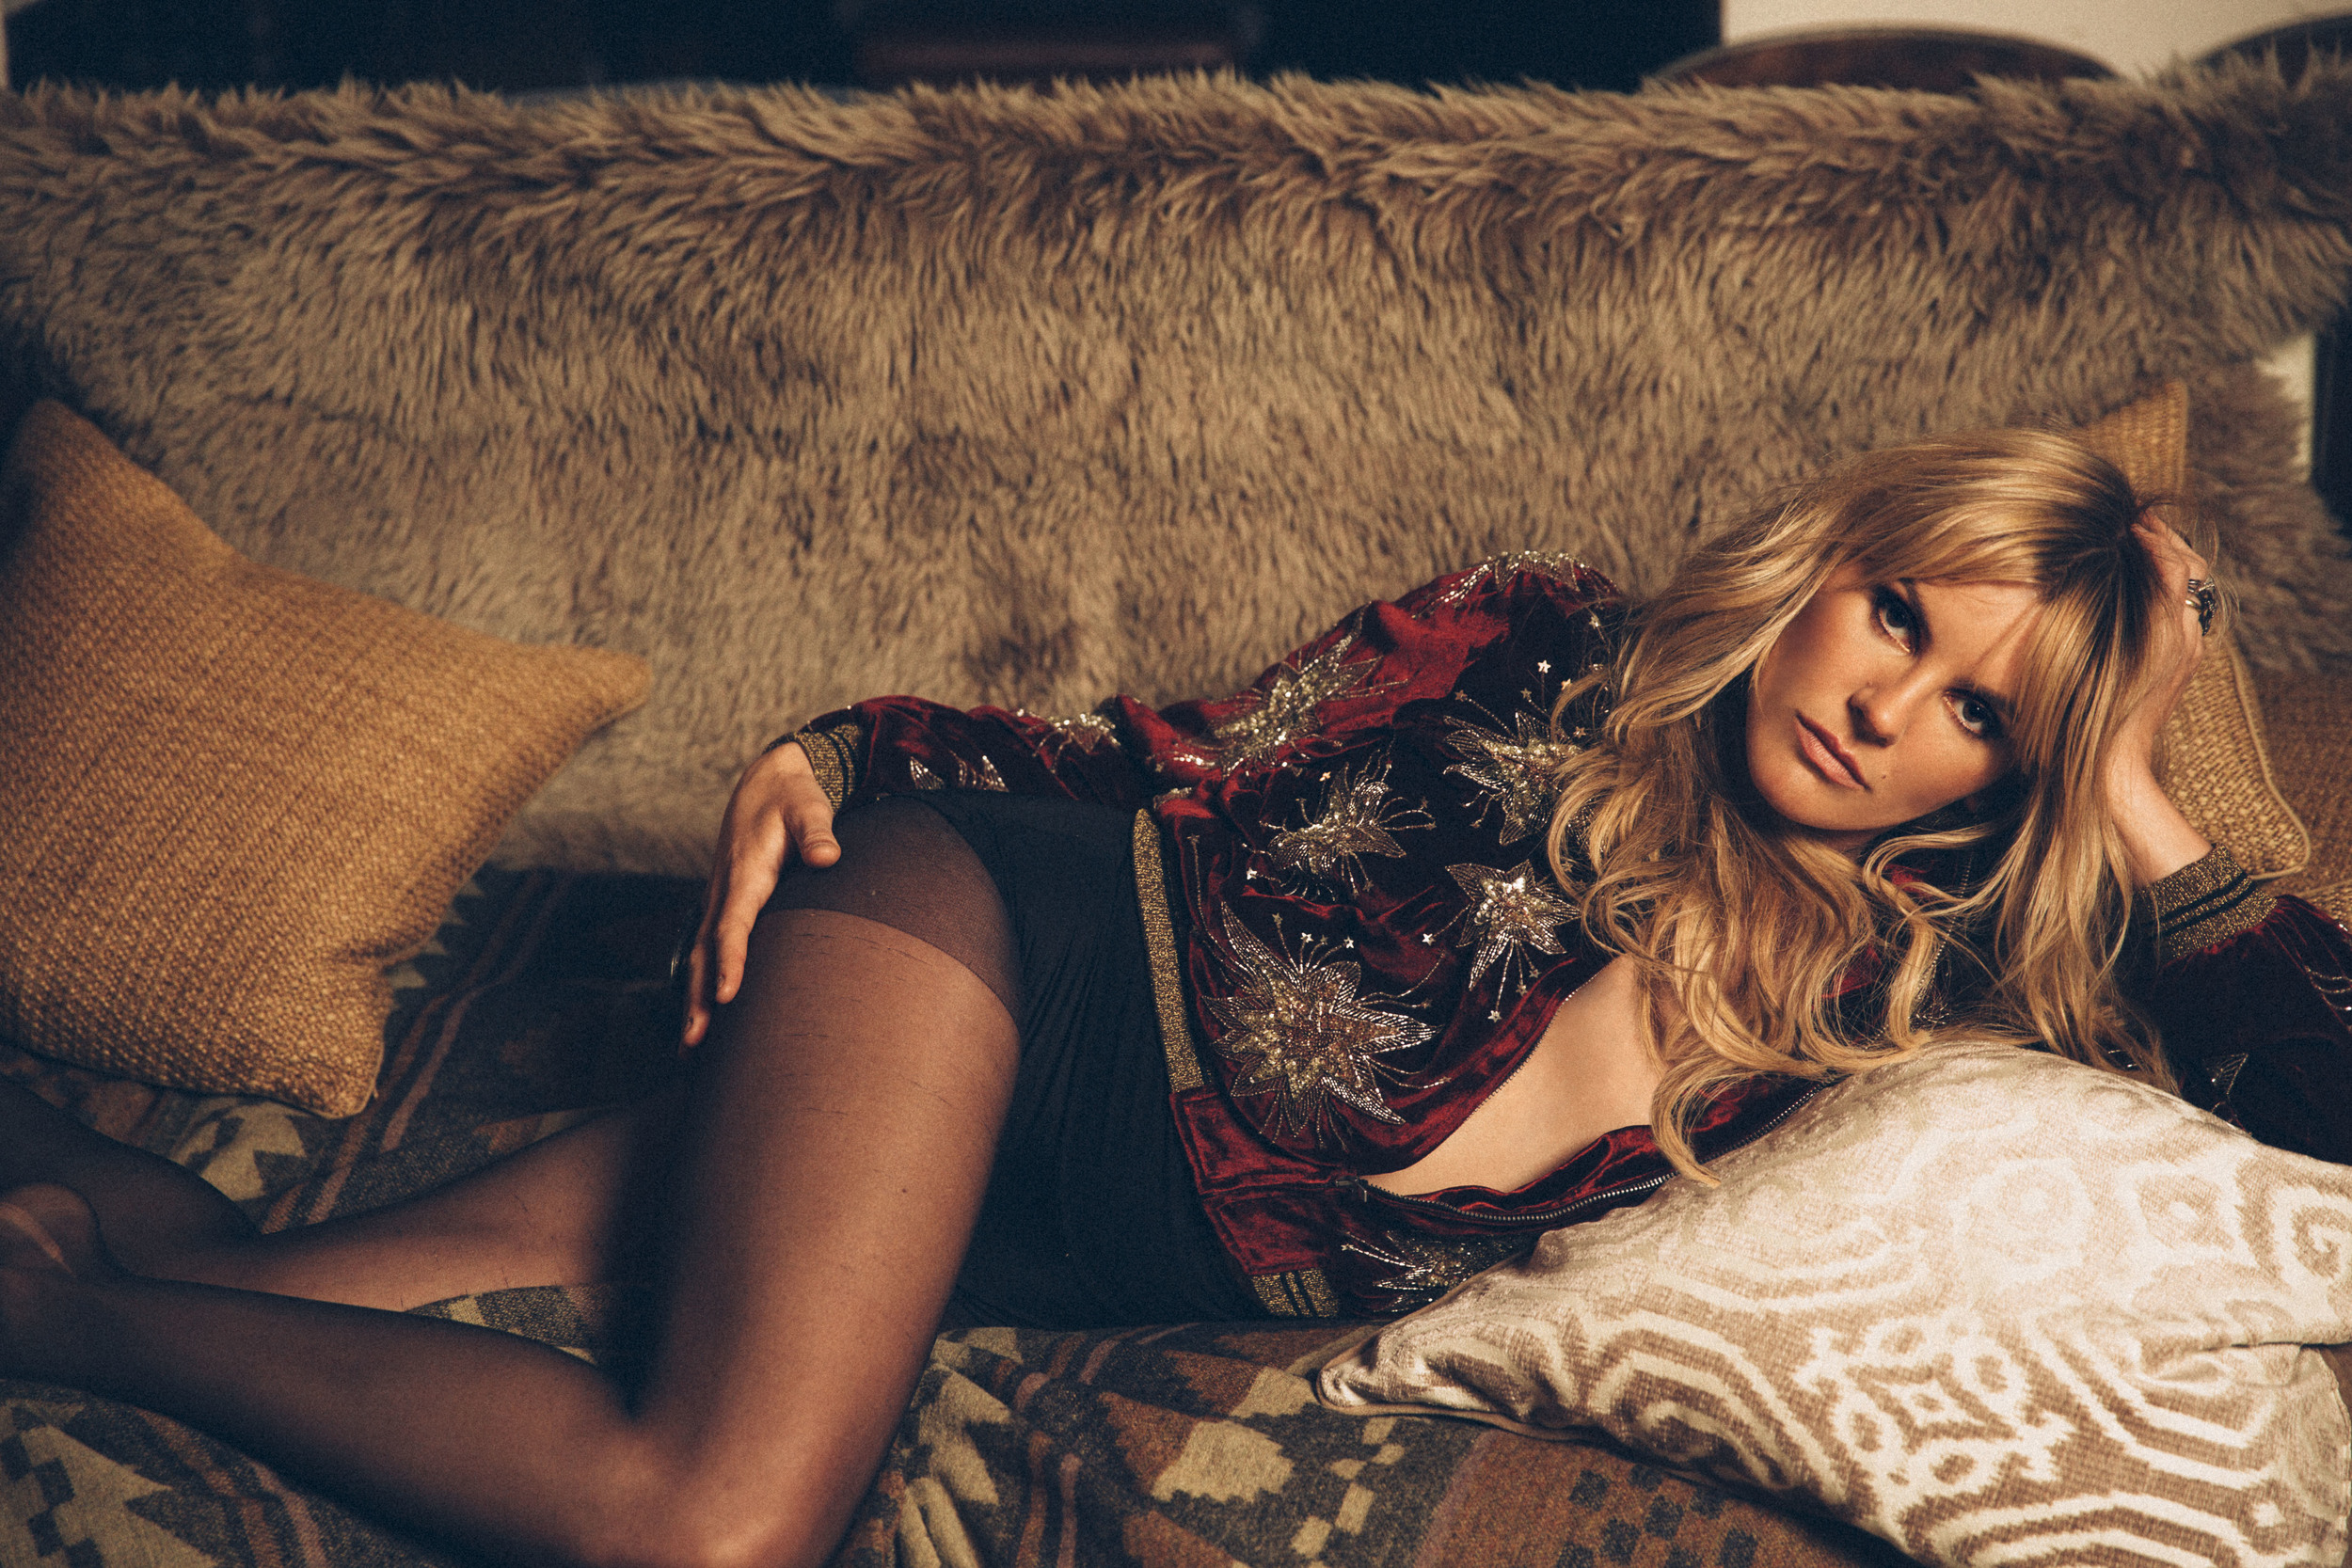 Singer Grace Potter will perform Oct. 2 at the Sands Bethlehem Event Center in Bethlehem.  (Photo Courtesy of Hollywood Records)